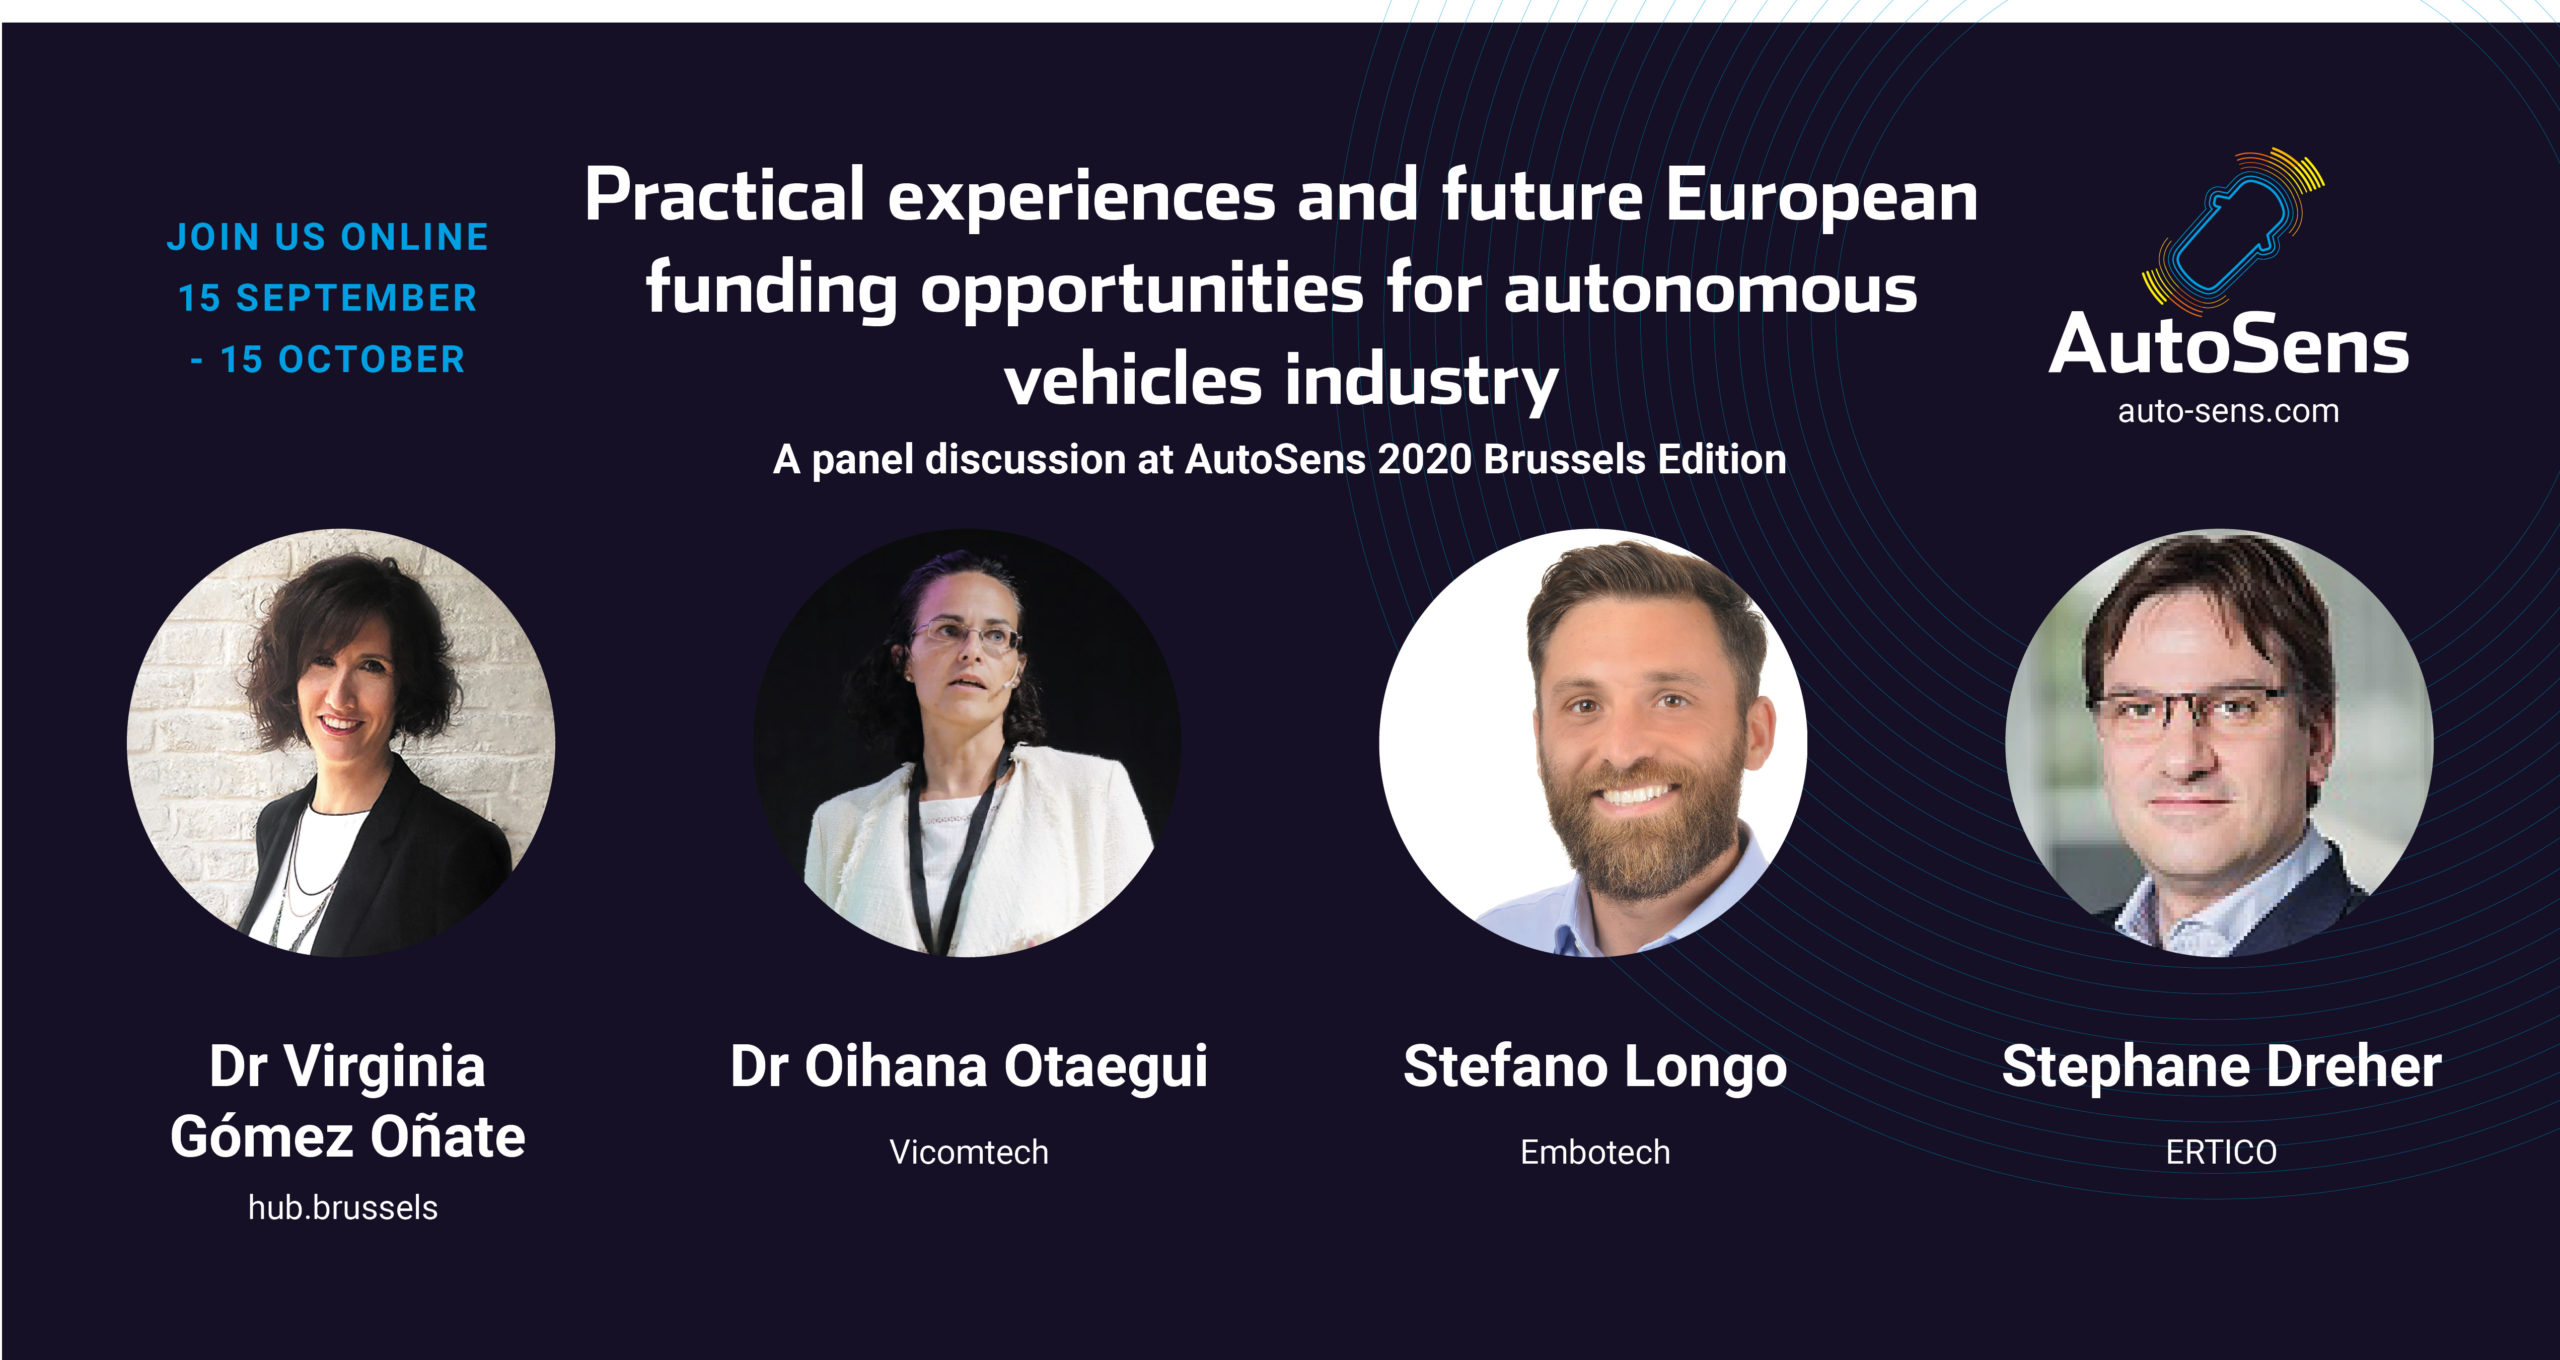 Practical experiences and future European funding opportunities for autonomous vehicles industry